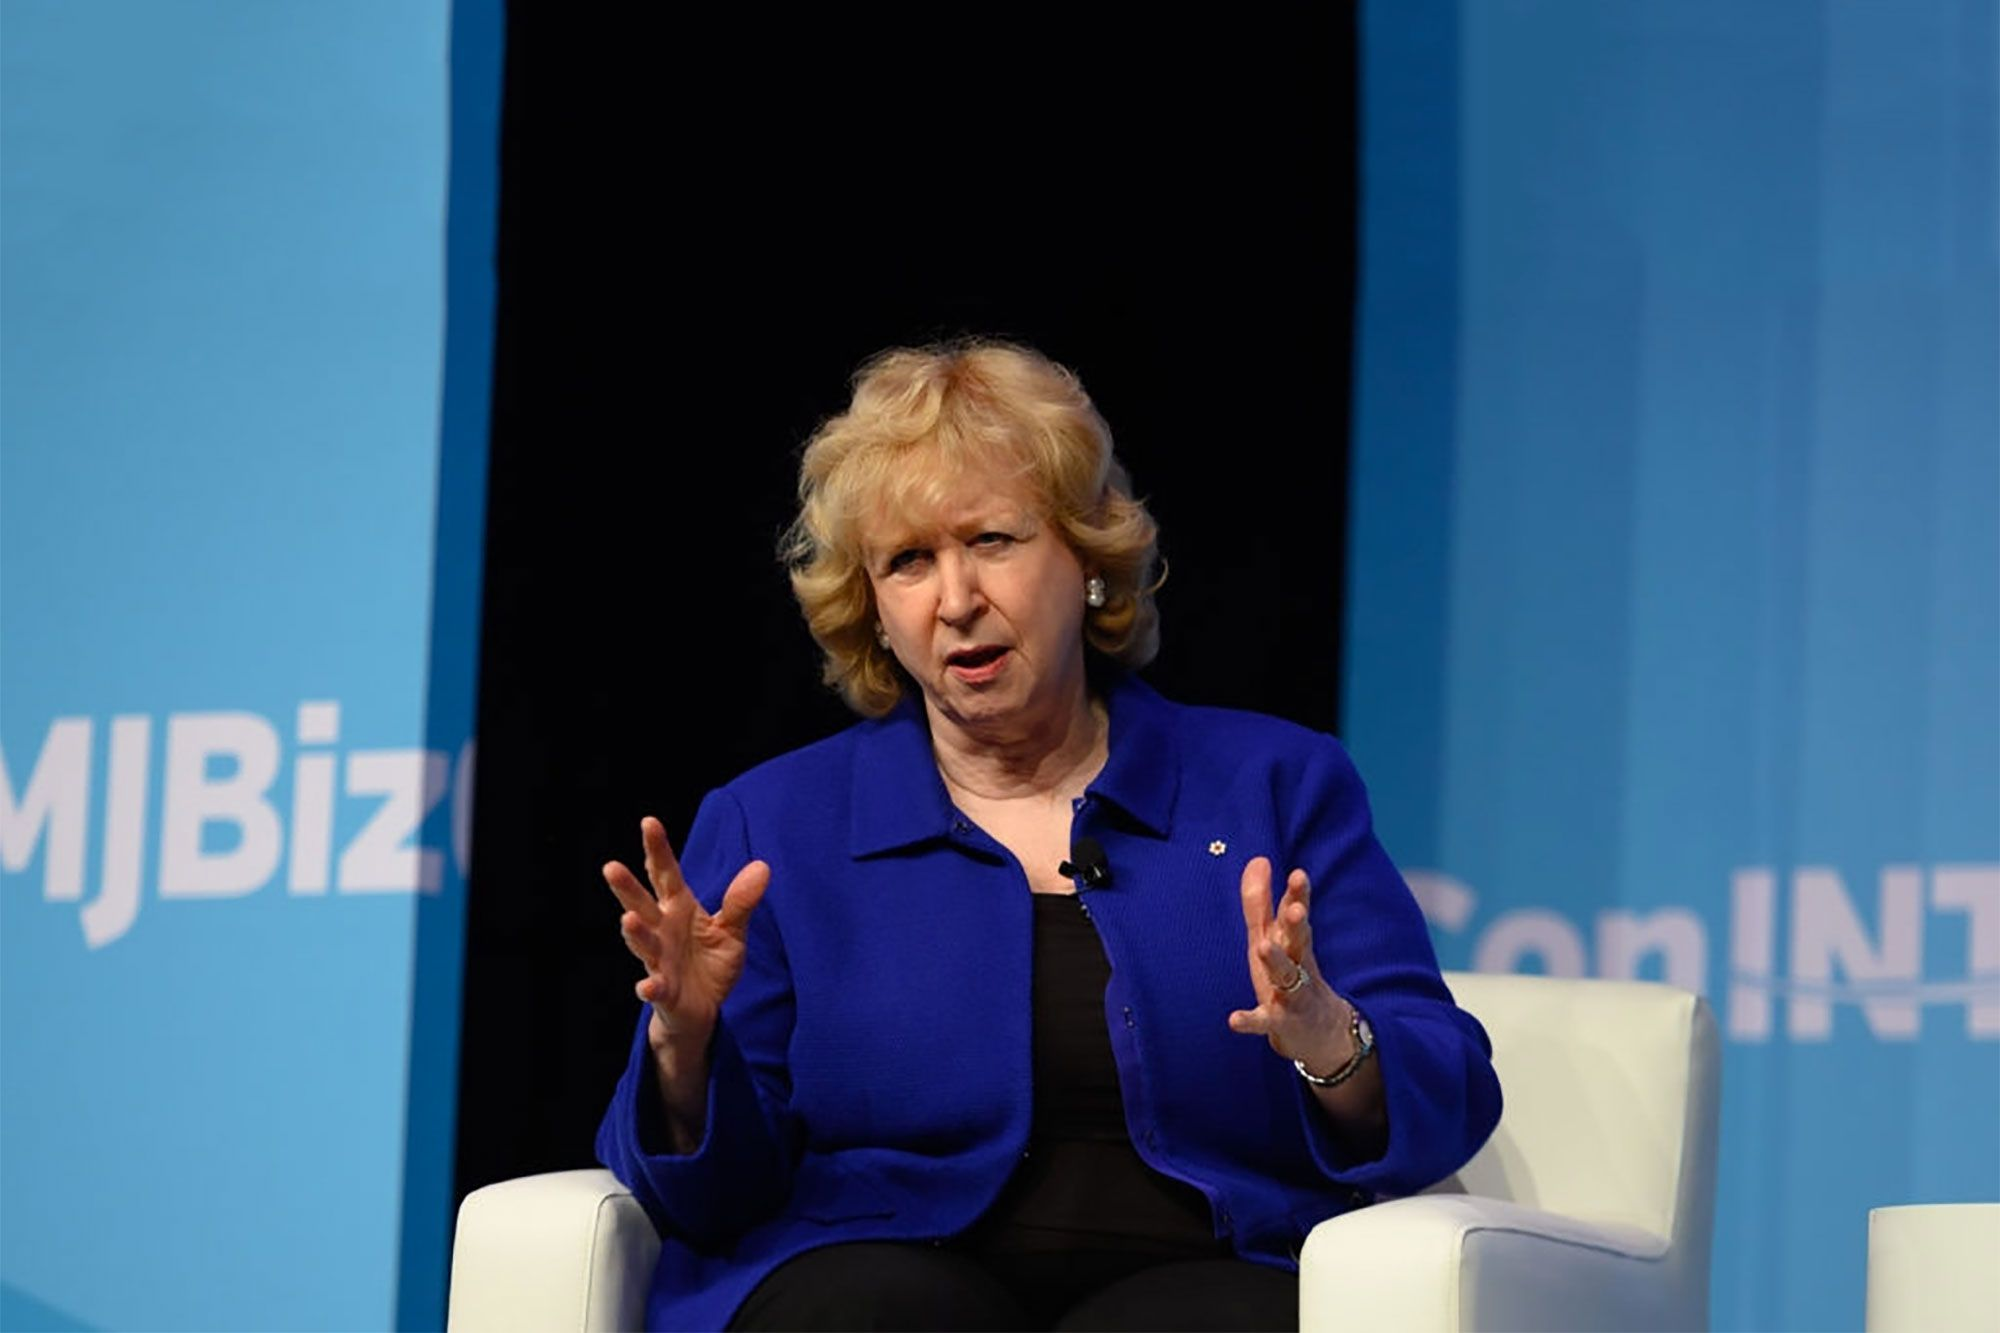 Cannabis Firms, Policymakers Must Work Hand-In-Hand, Ex-Canadian Prime Minister Says In MJBizConINT'L Keynote